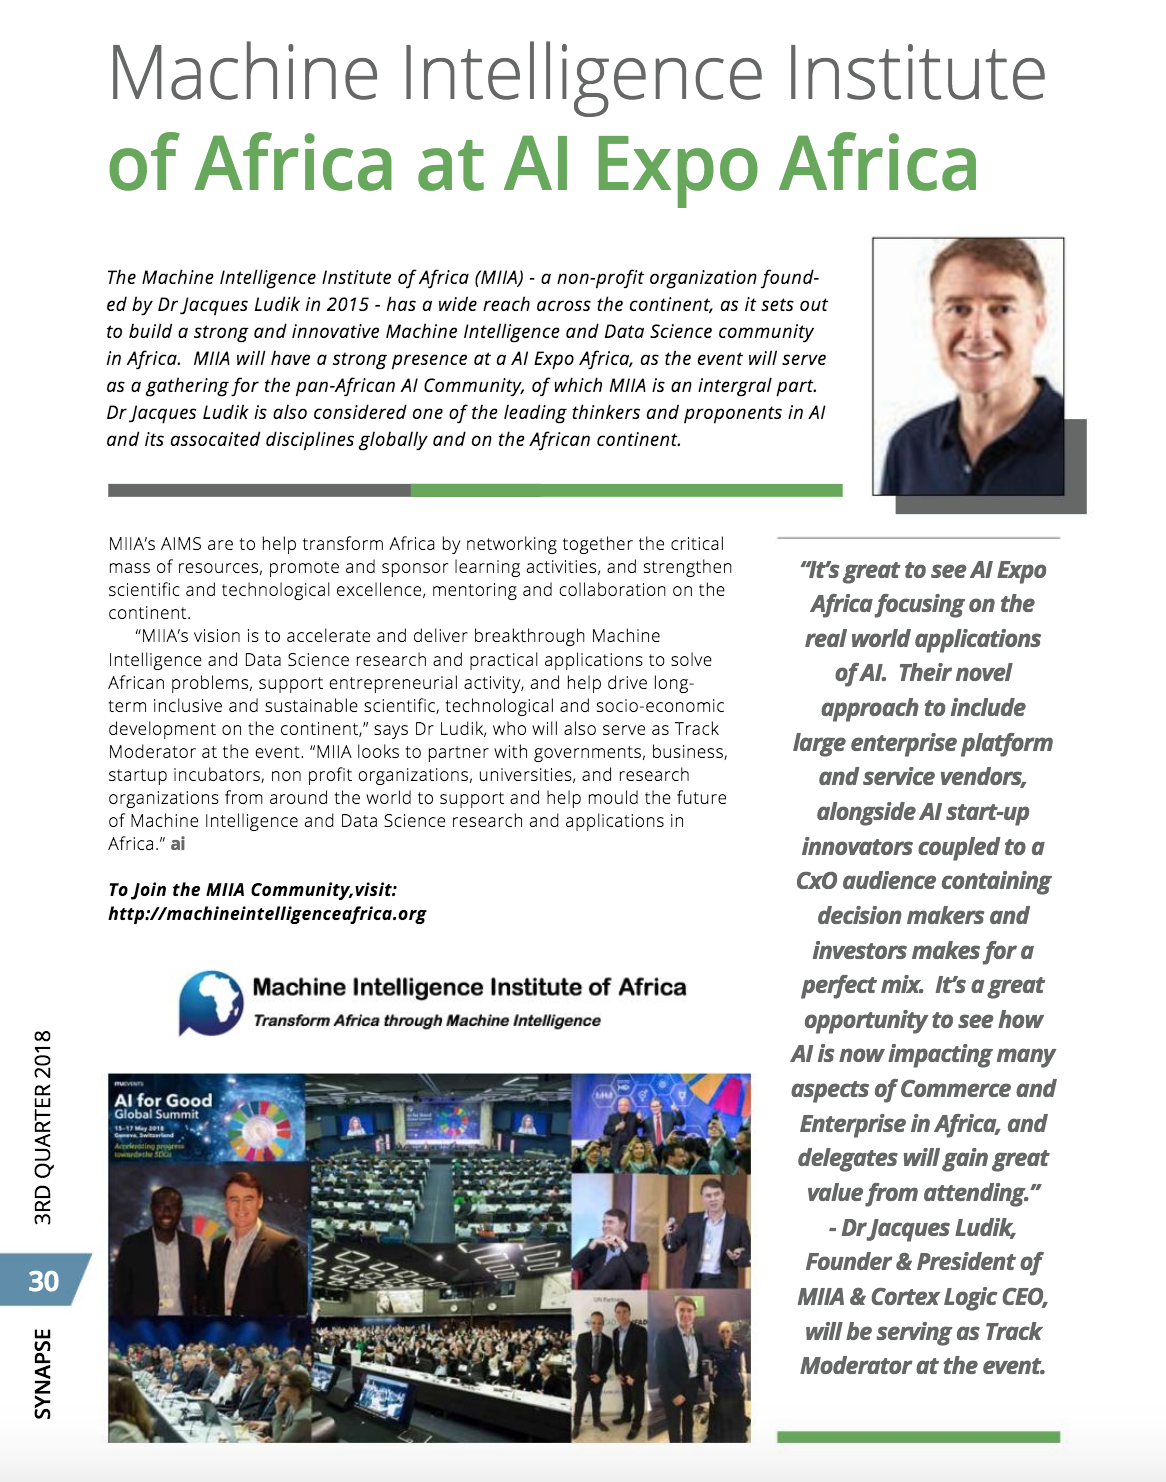 Machine Intelligence Institute of Africa at AI Africa Expo